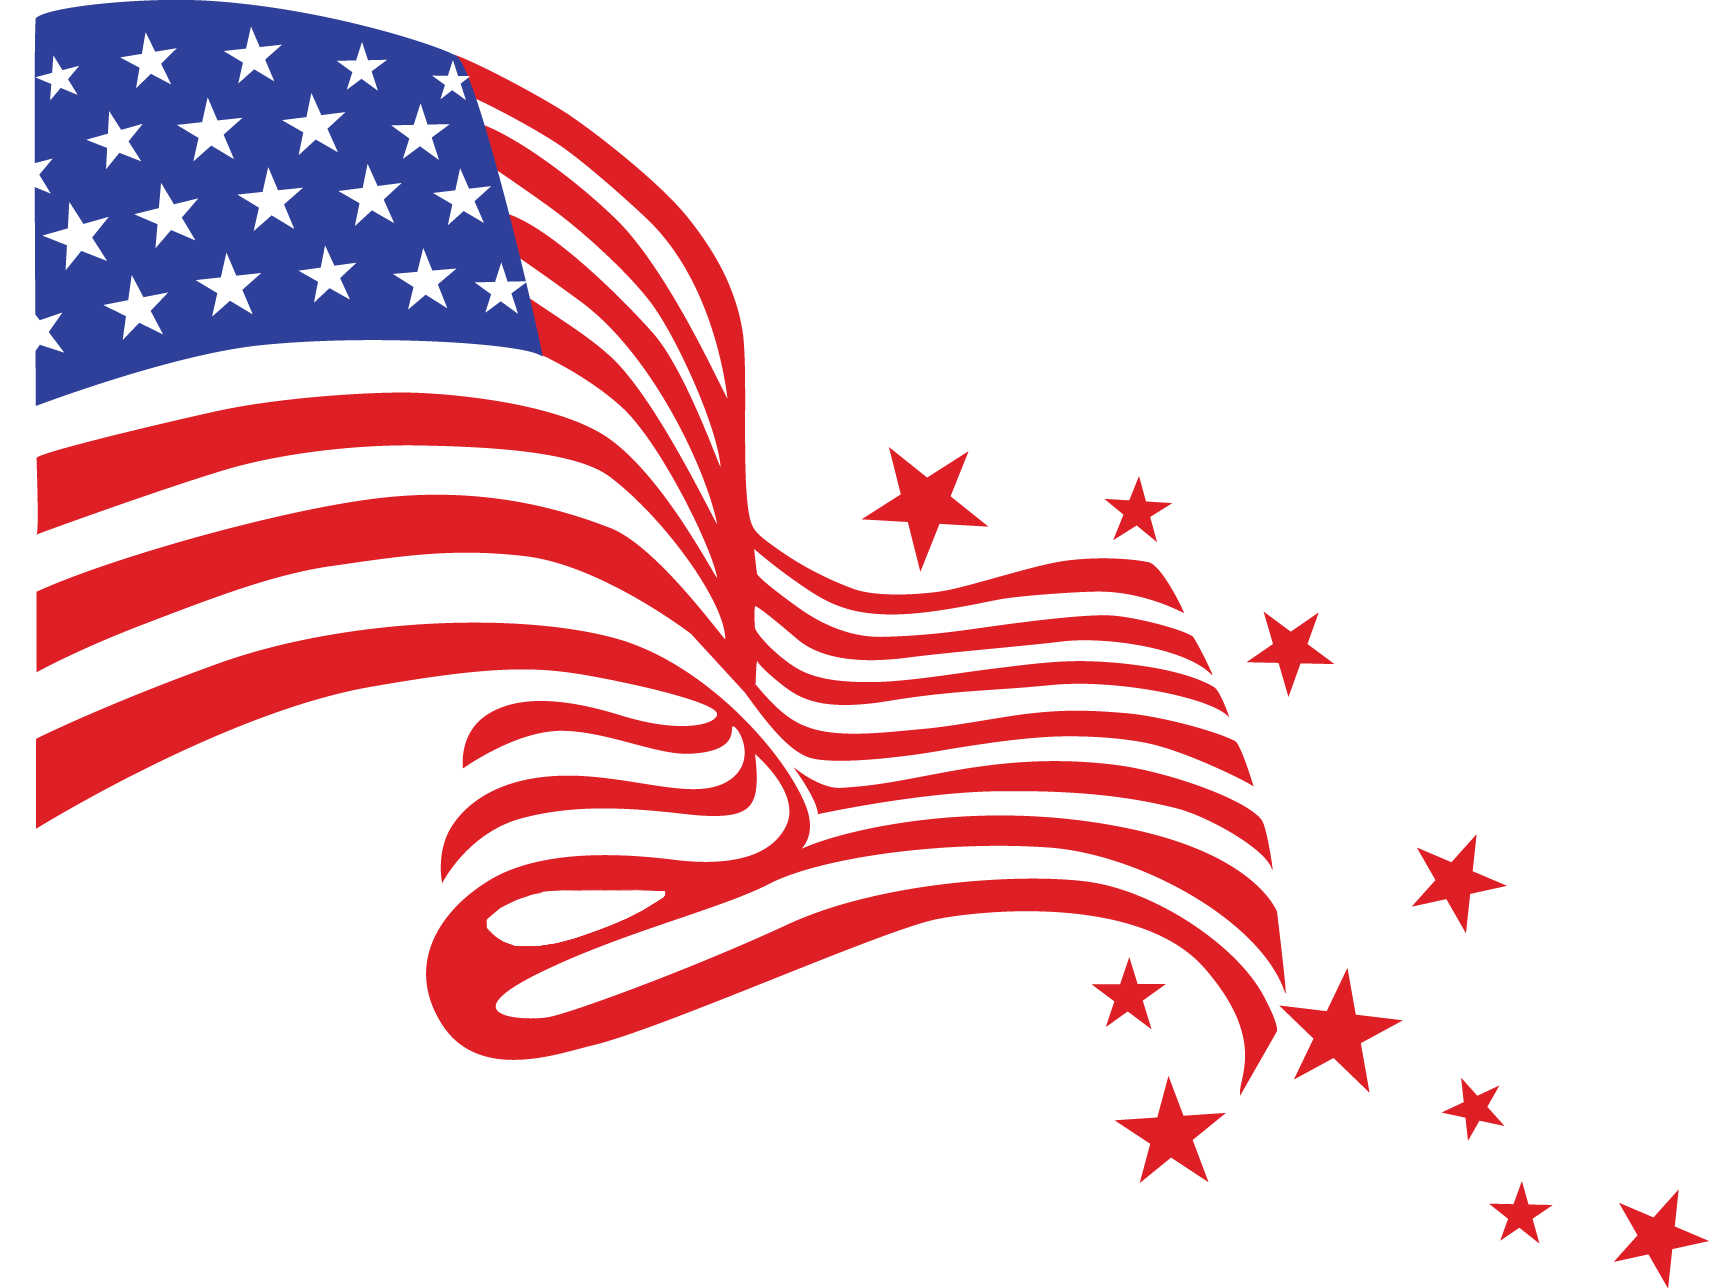 Clipart us picture royalty free library Us flag american flag free clip art clipart 3 - Clipartix picture royalty free library